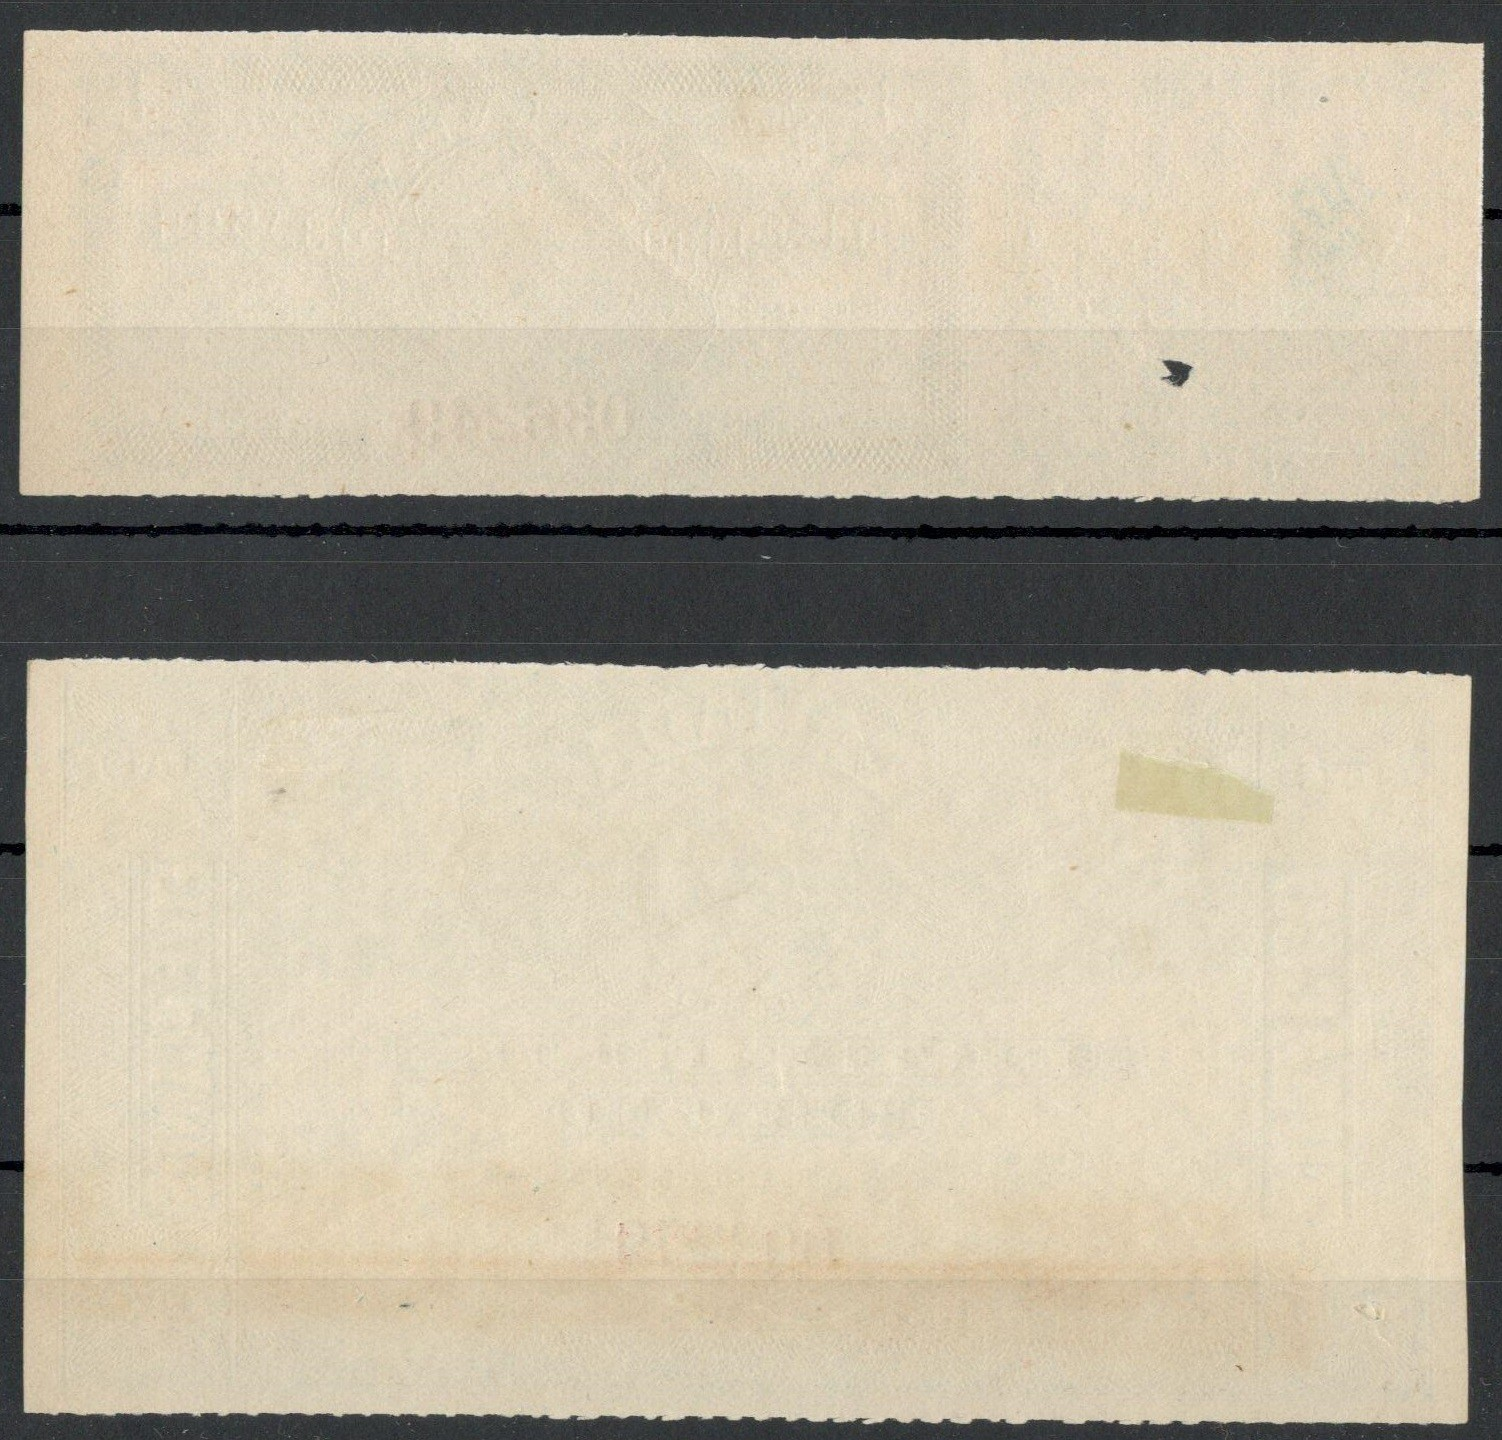 CANADA CUSTOMS TOBACCO ENTRY LABEL - Image 4 of 4